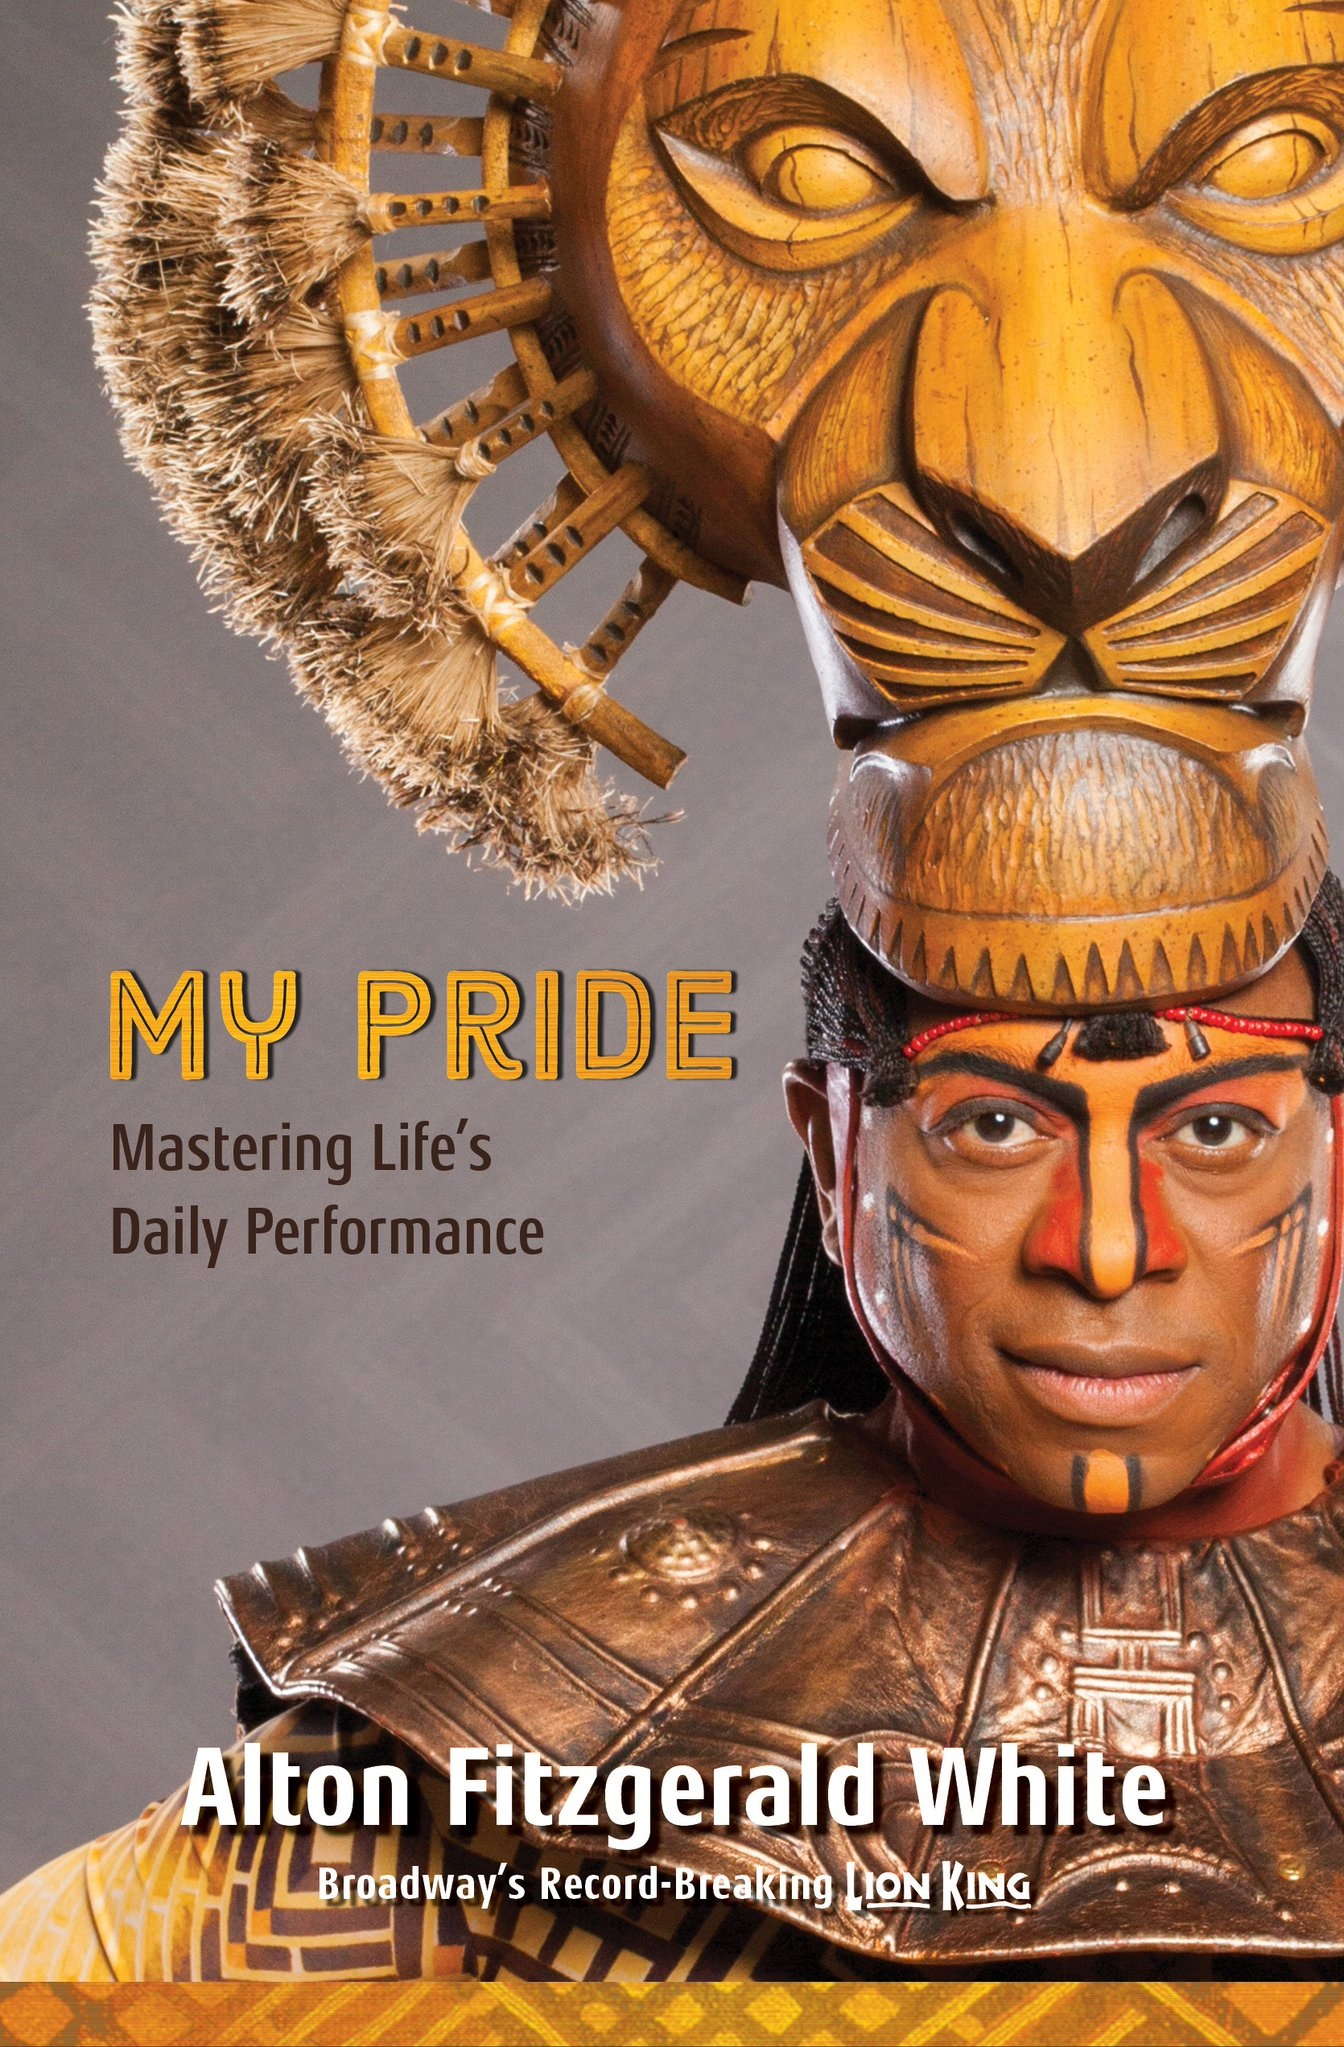 tips to perform better from The Lion King Alton Fitzgerald White